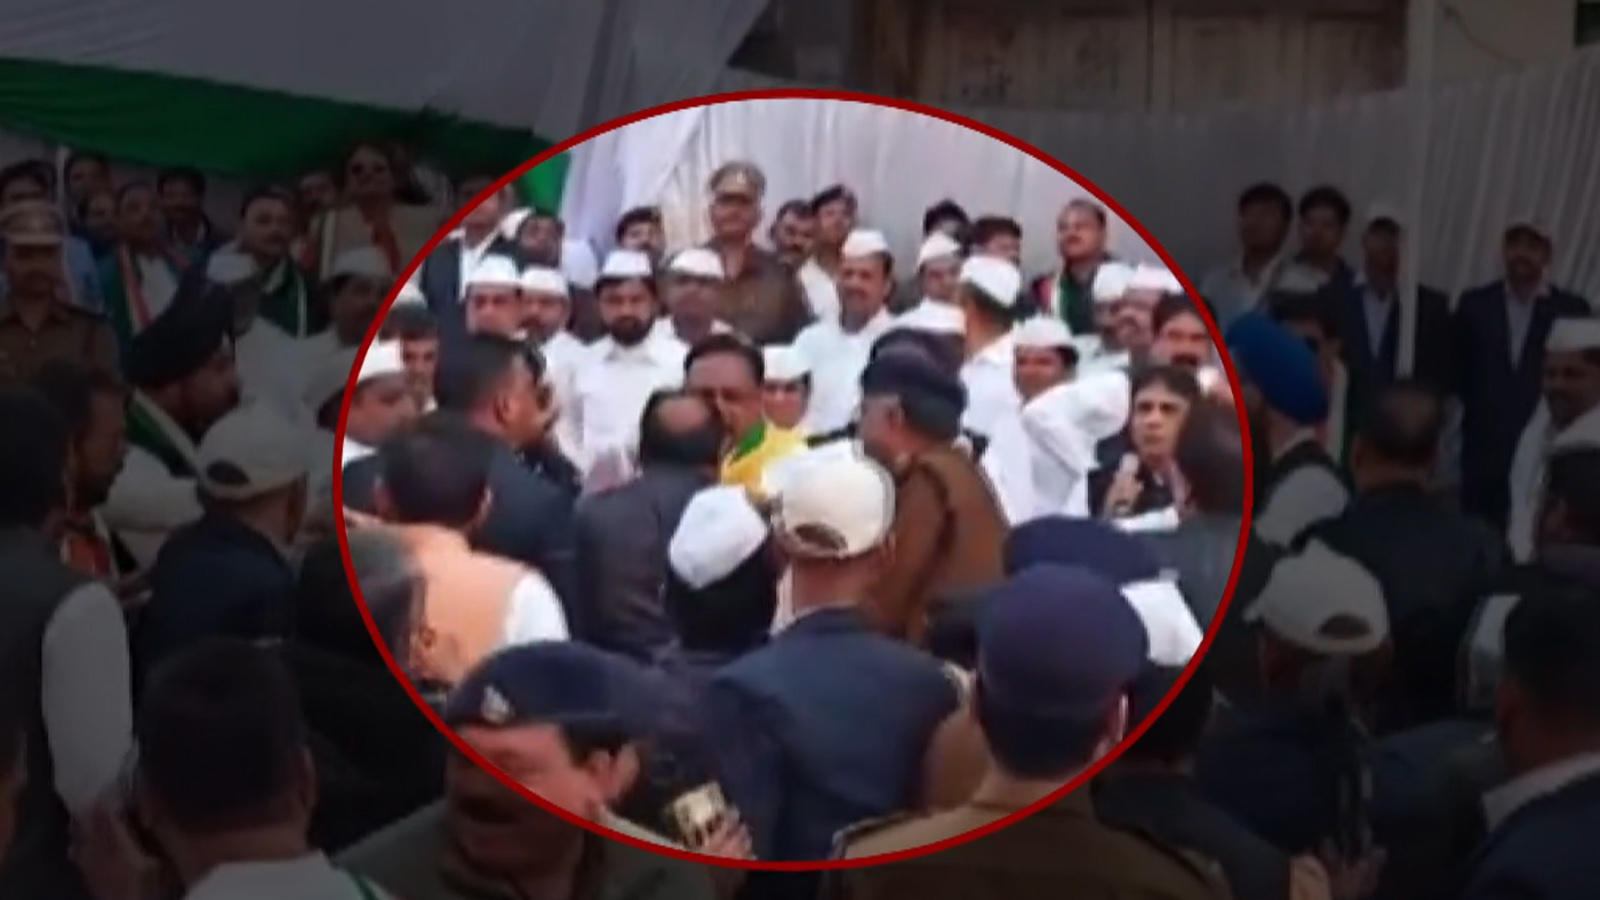 watch-brawl-between-congress-leaders-during-flag-hoisting-ceremony-in-mp